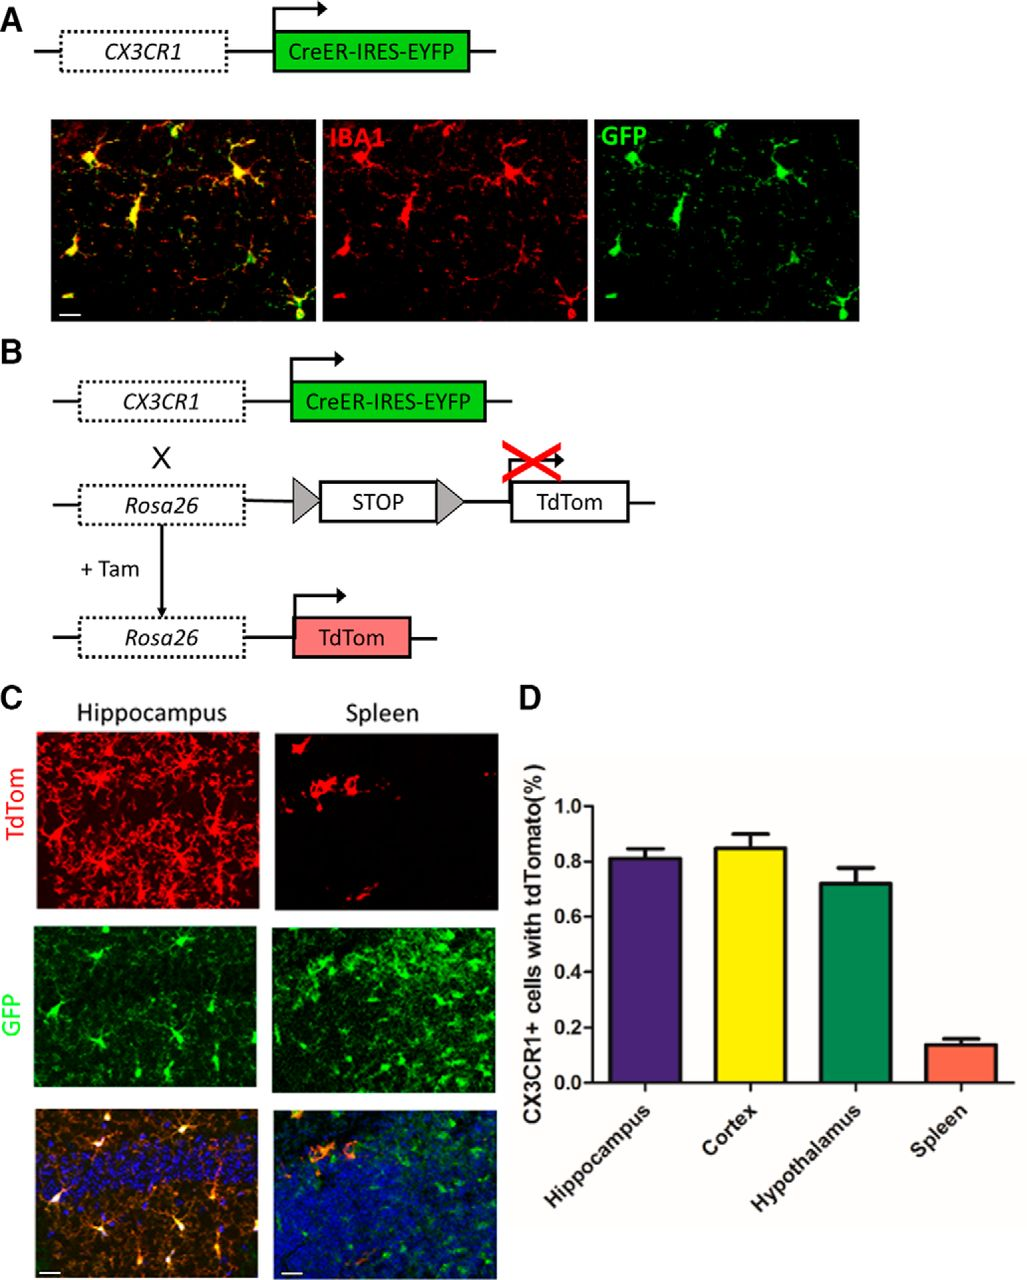 Increased Microglial Activity, Impaired Adult Hippocampal